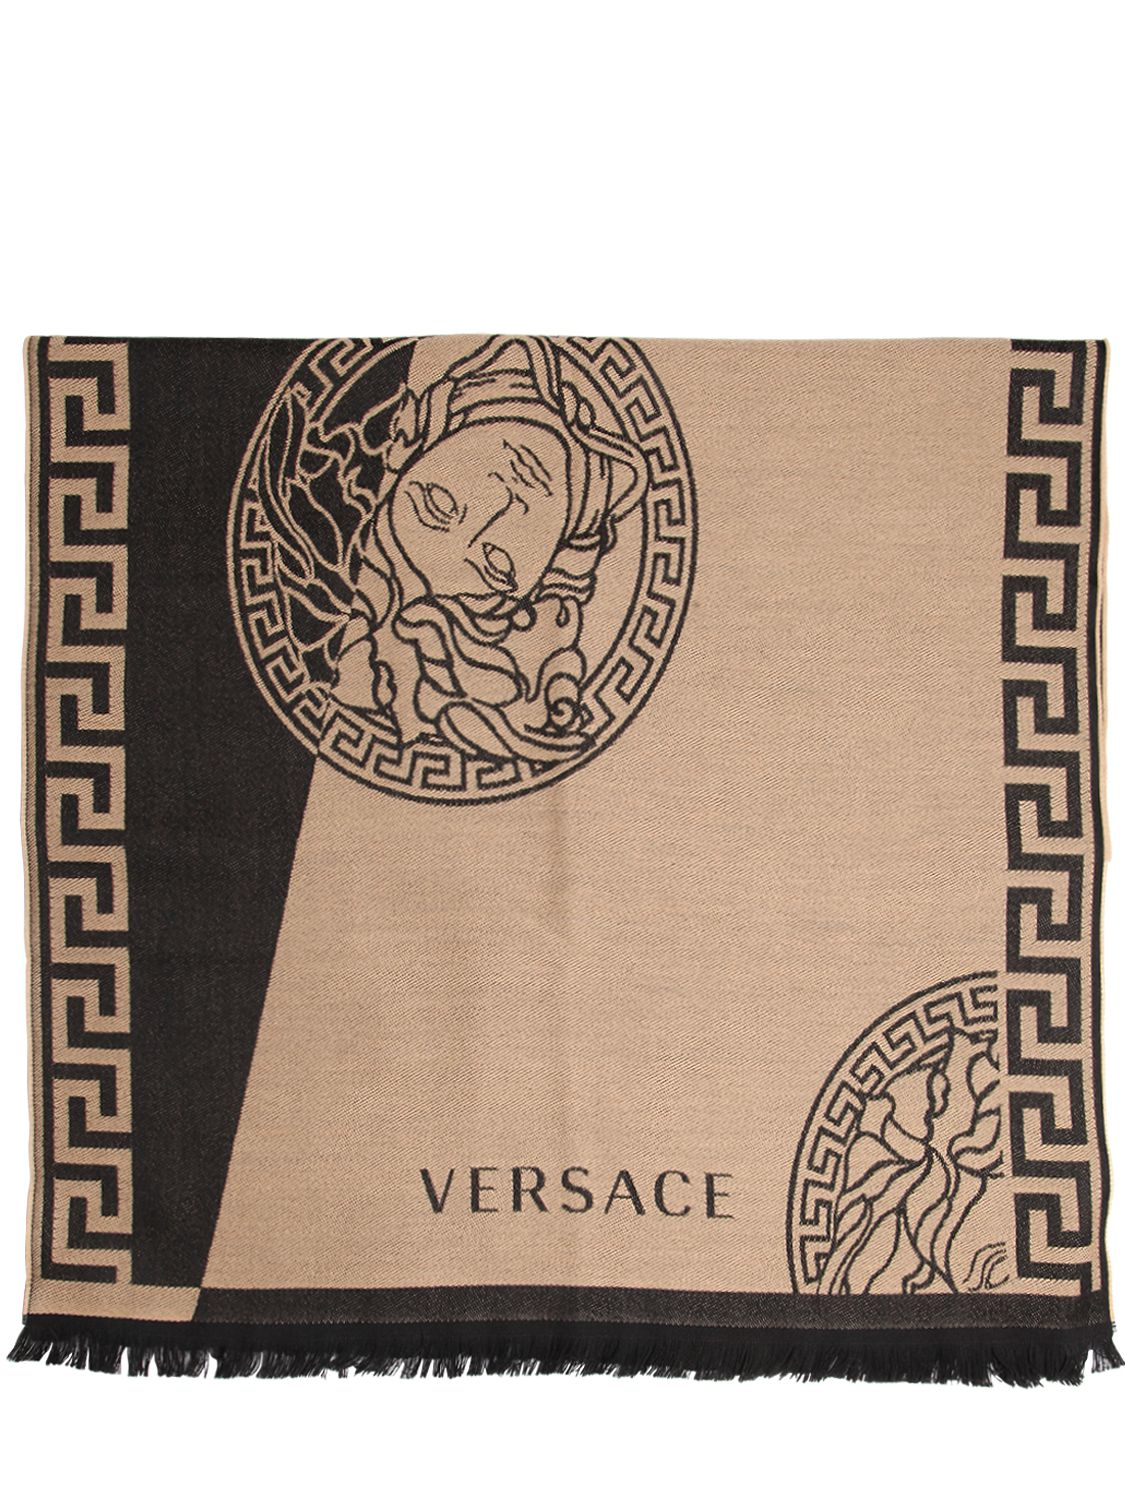 versace two tone fine wool jacquard knit scarf in natural for men camel lyst. Black Bedroom Furniture Sets. Home Design Ideas